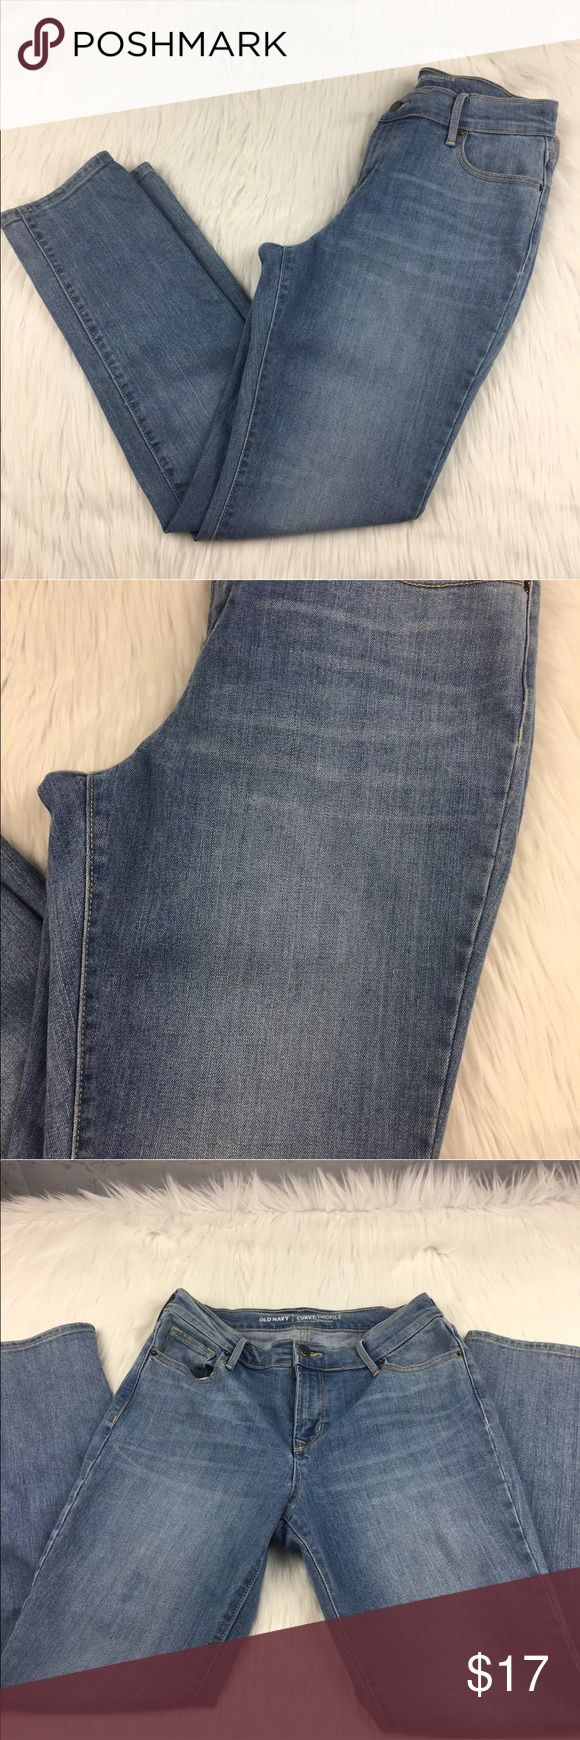 """Old Navy mid rise curvy jeans sz 4 Short Old Navy Mid Rise Curvy Light wash jeans Size 4 Short inseam- 29 waist laying flat- 14.5"""" 84% cotton, 14% polyester, 2% spandex Old Navy Jeans"""